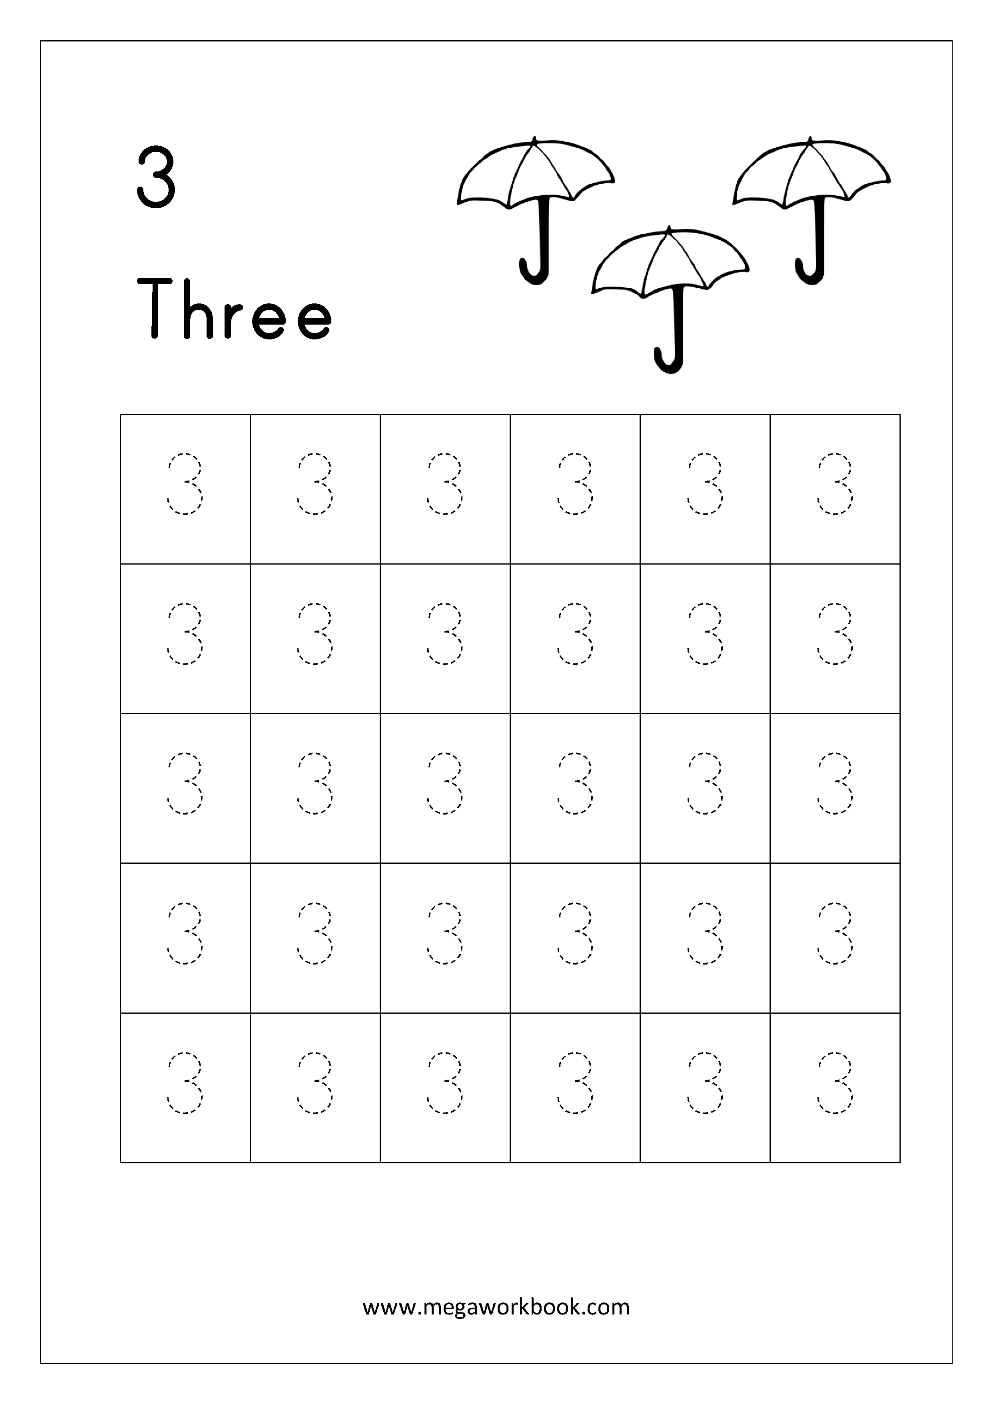 FREE Lowercase Letter Tracing Worksheets!